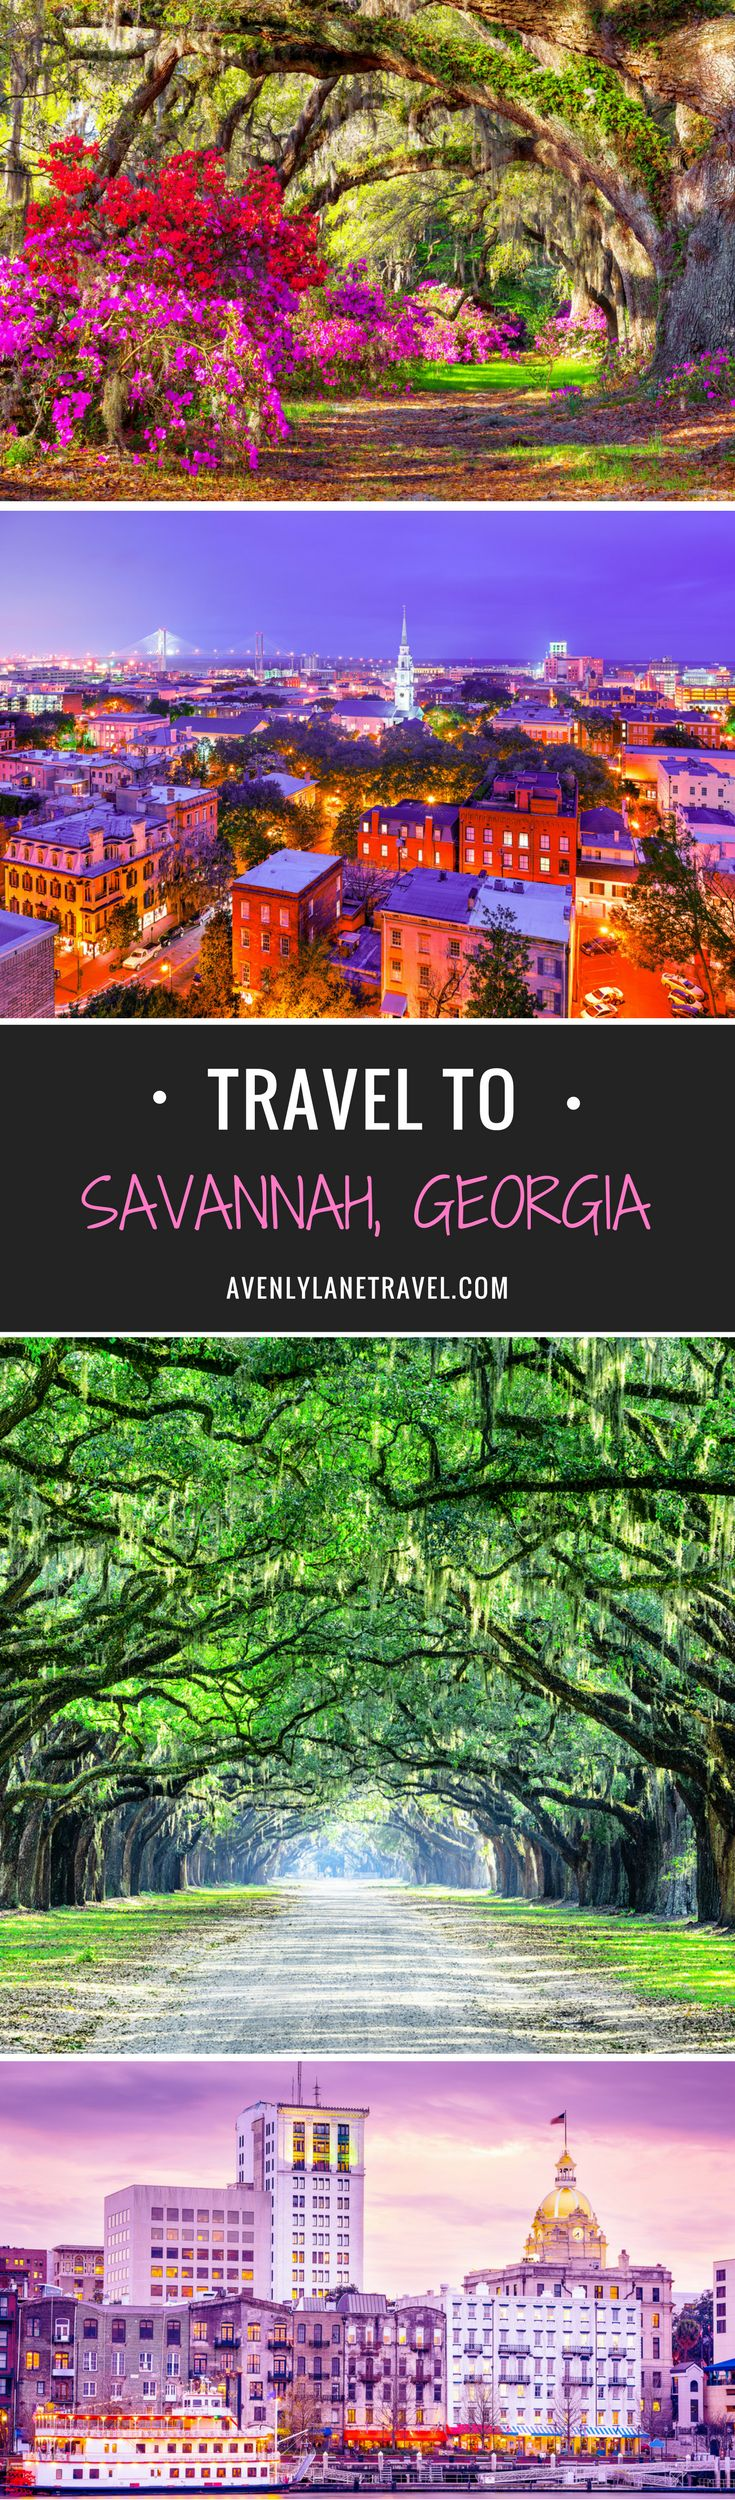 Even though Savannah is a Southern tourist hot spot, it unfortunately doesn't seem to get as much attention as New Orleans. When you picture the antebellum South, Savannah is exactly what should pop into your head. Click through to read some of the best things to do in Savannah, Georgia!